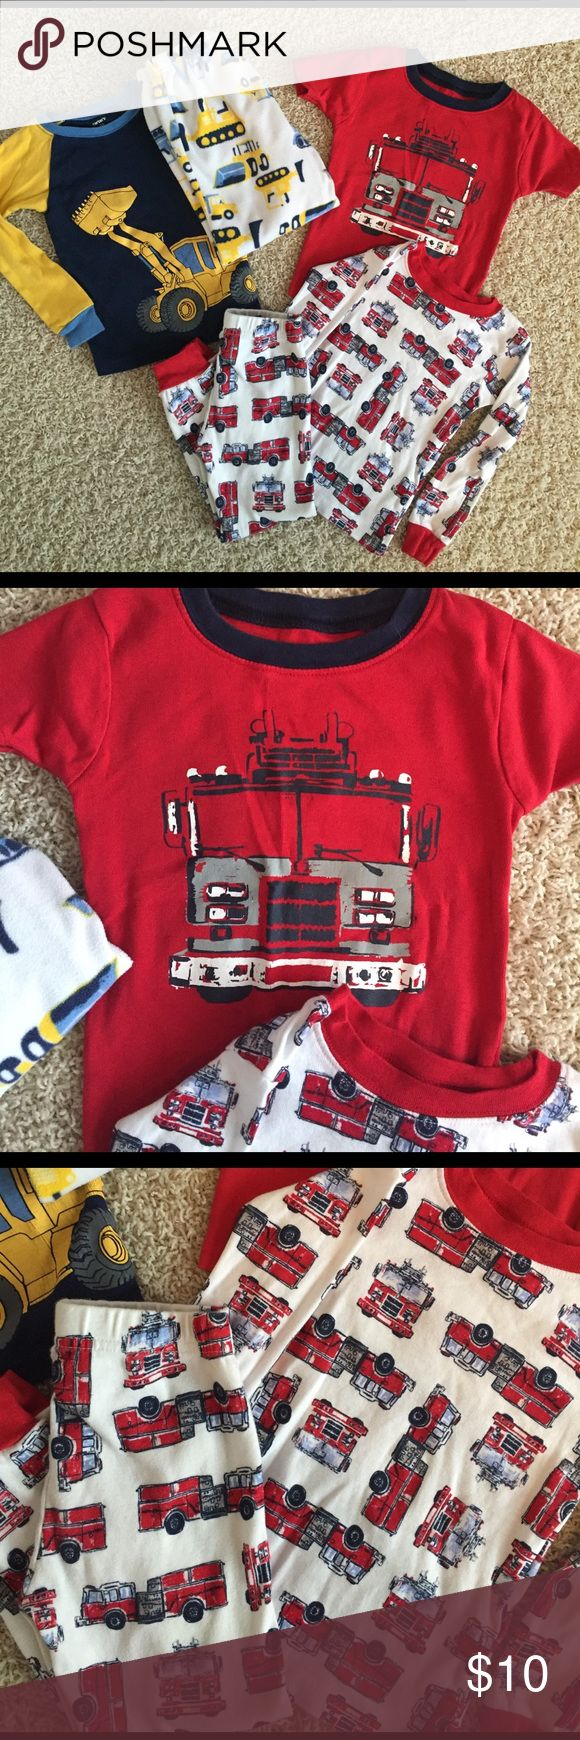 Boys pajama sets Two sets of boys pajamas. Both size 3T. The red T-shirt in the fire trucks that has never been worn. Carter's Pajamas Pajama Sets